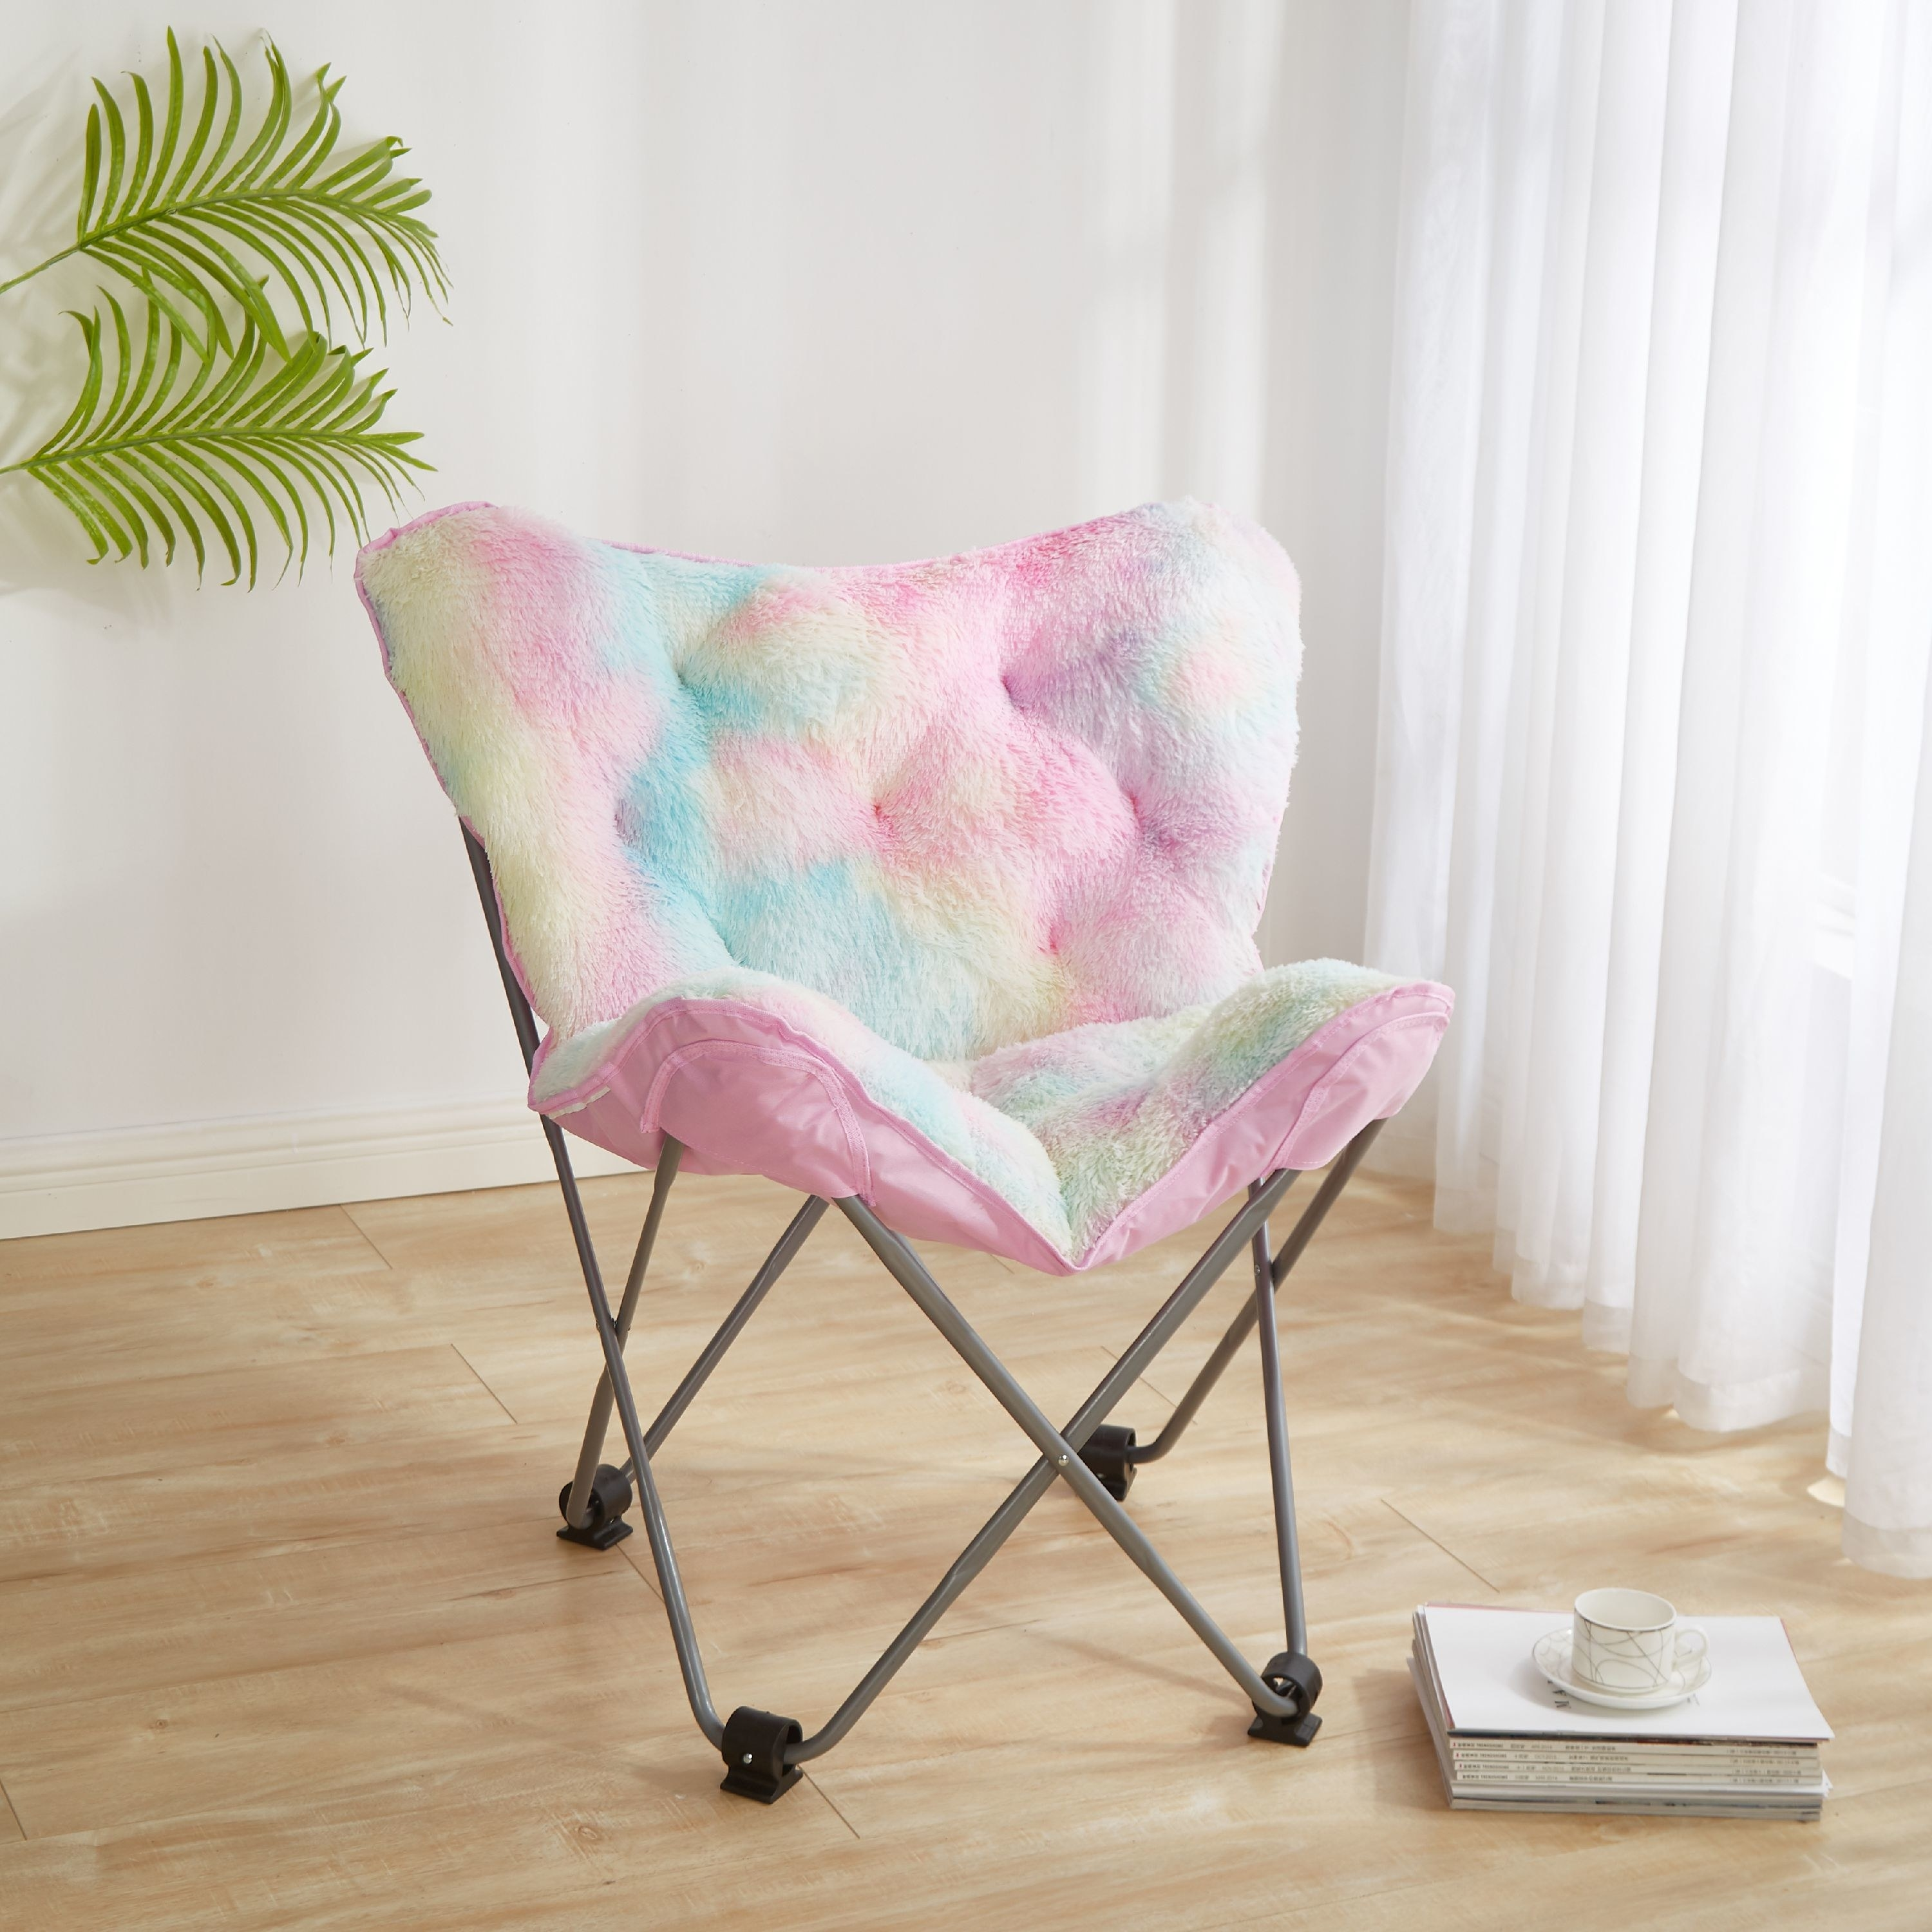 A folding chair with thin metal legs and rubber stopper with a light-colored rainbow cushion